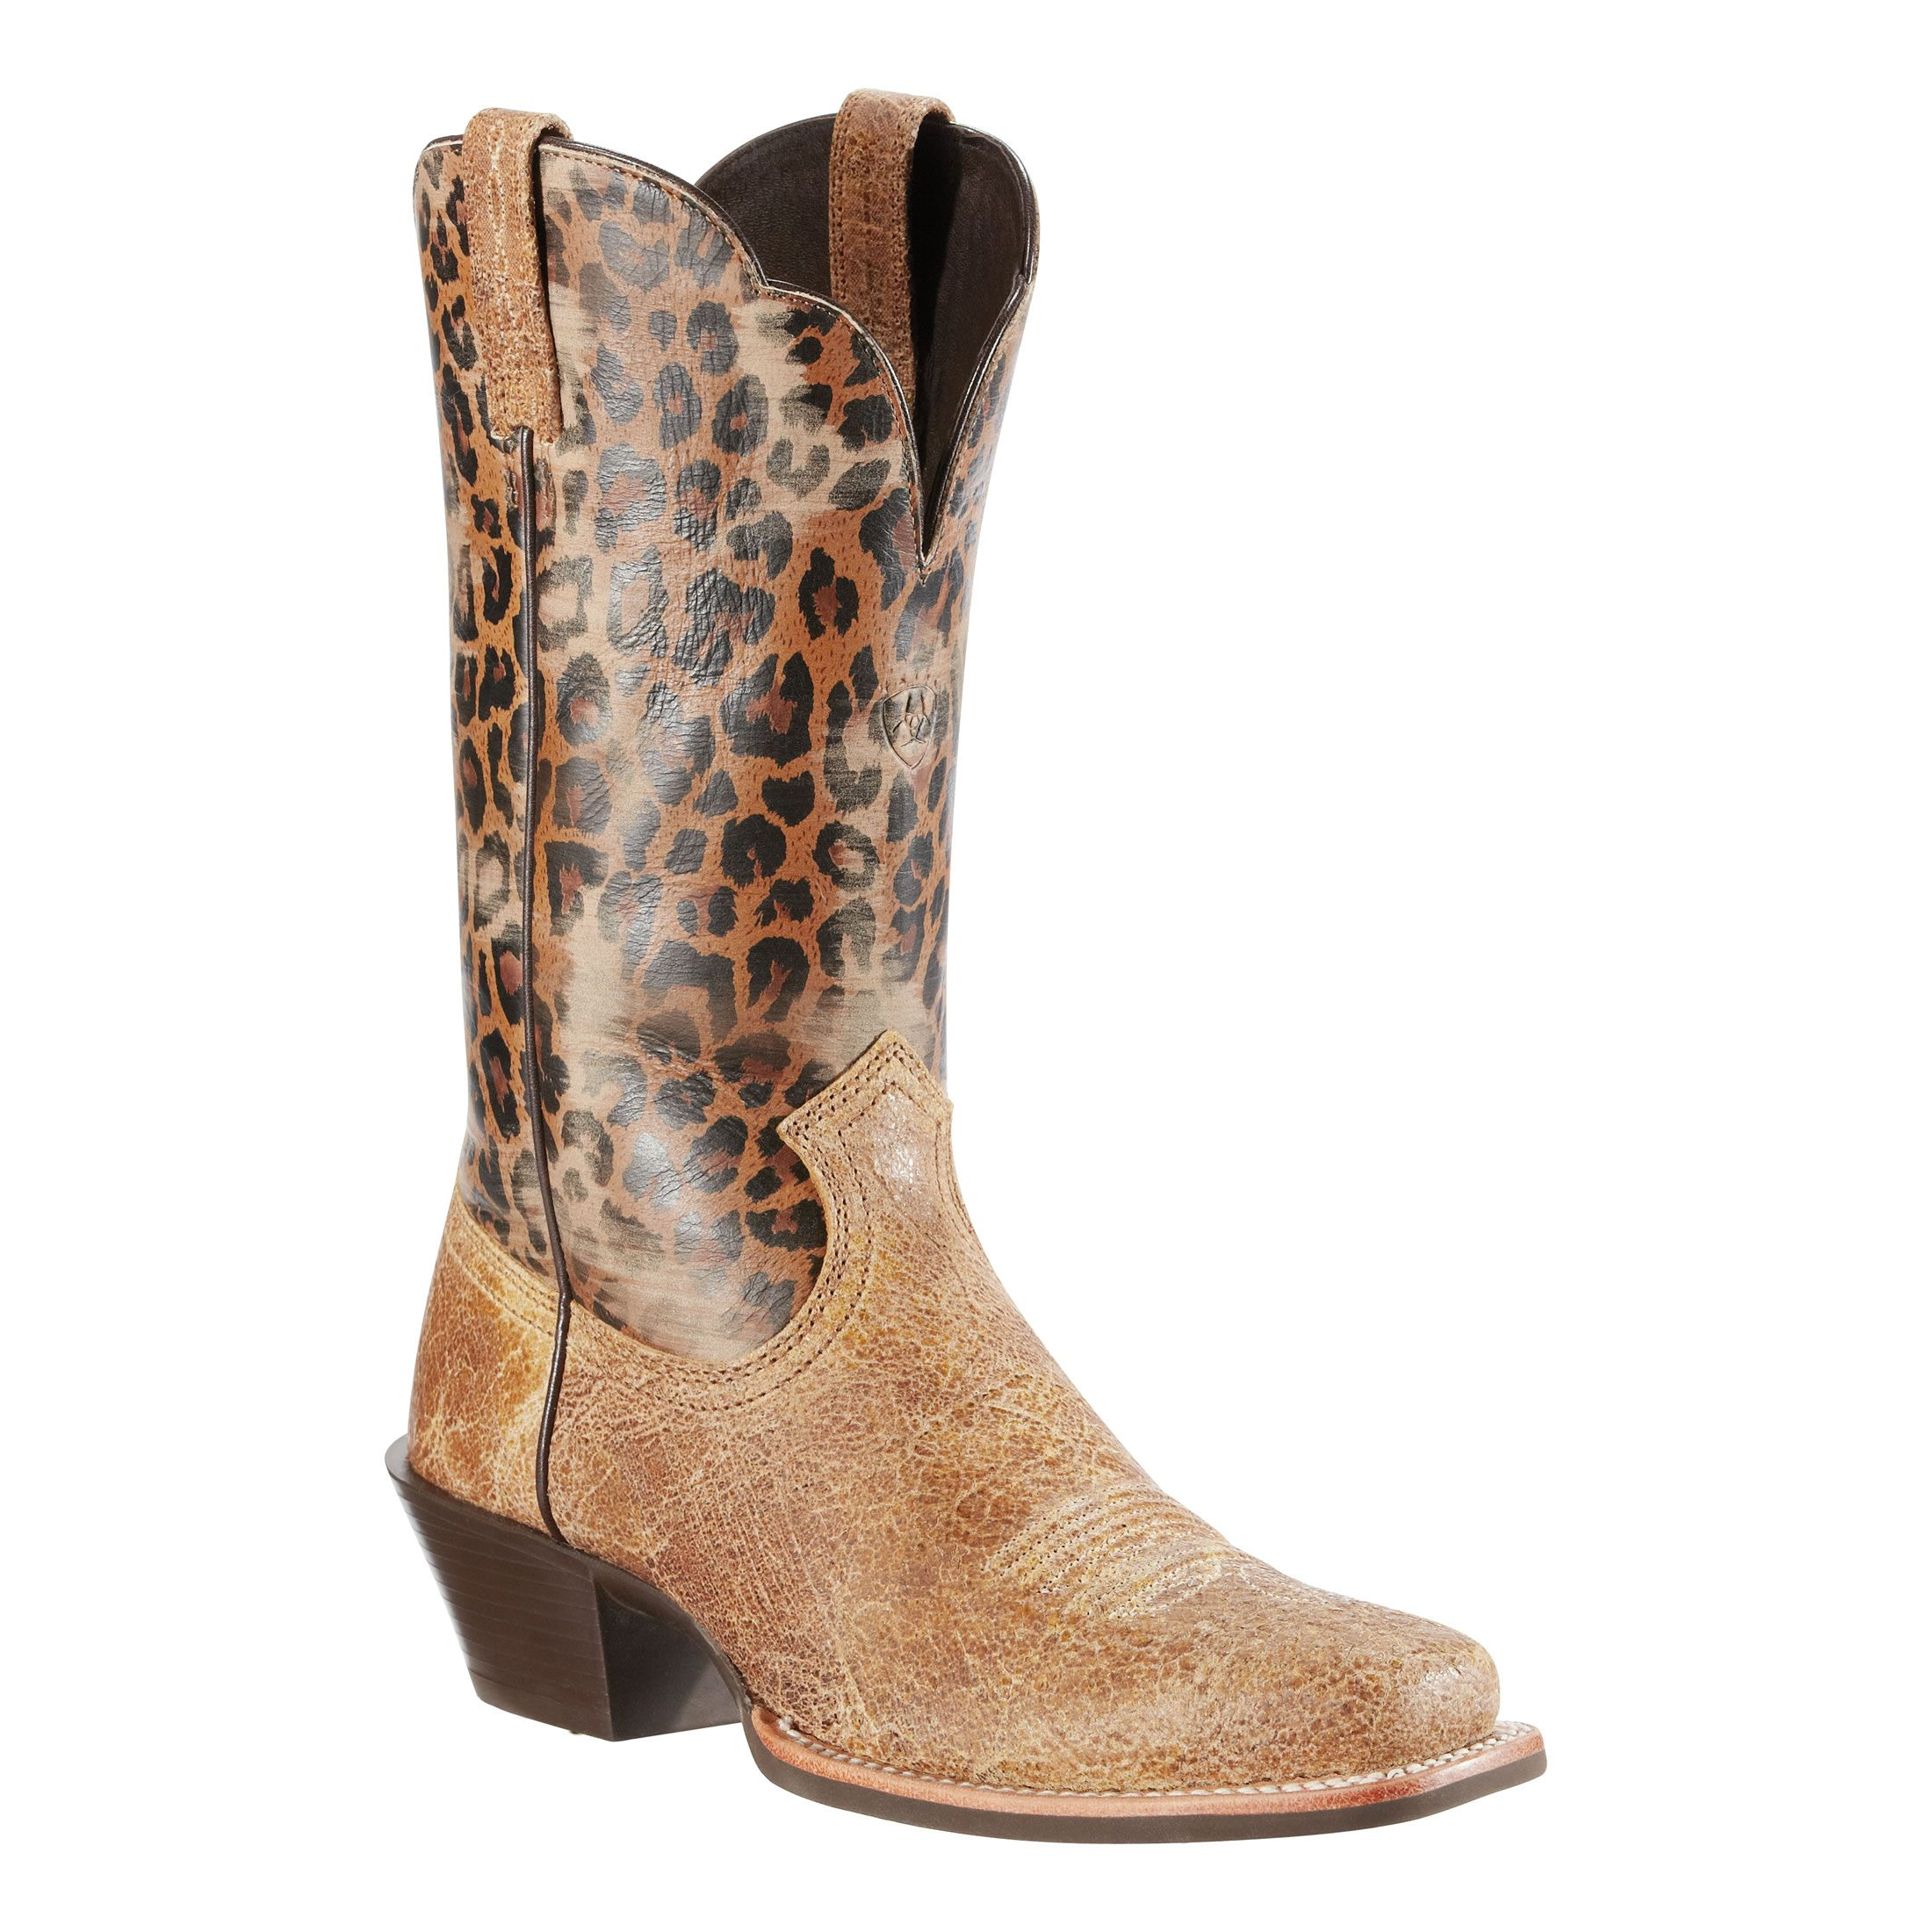 Cheetah Cowgirl Boots Oh My Gosh So Weird You Said You Wanted A Pair Today Well Here You Go Olivia Preston Cheetah Boots Boots Western Boots